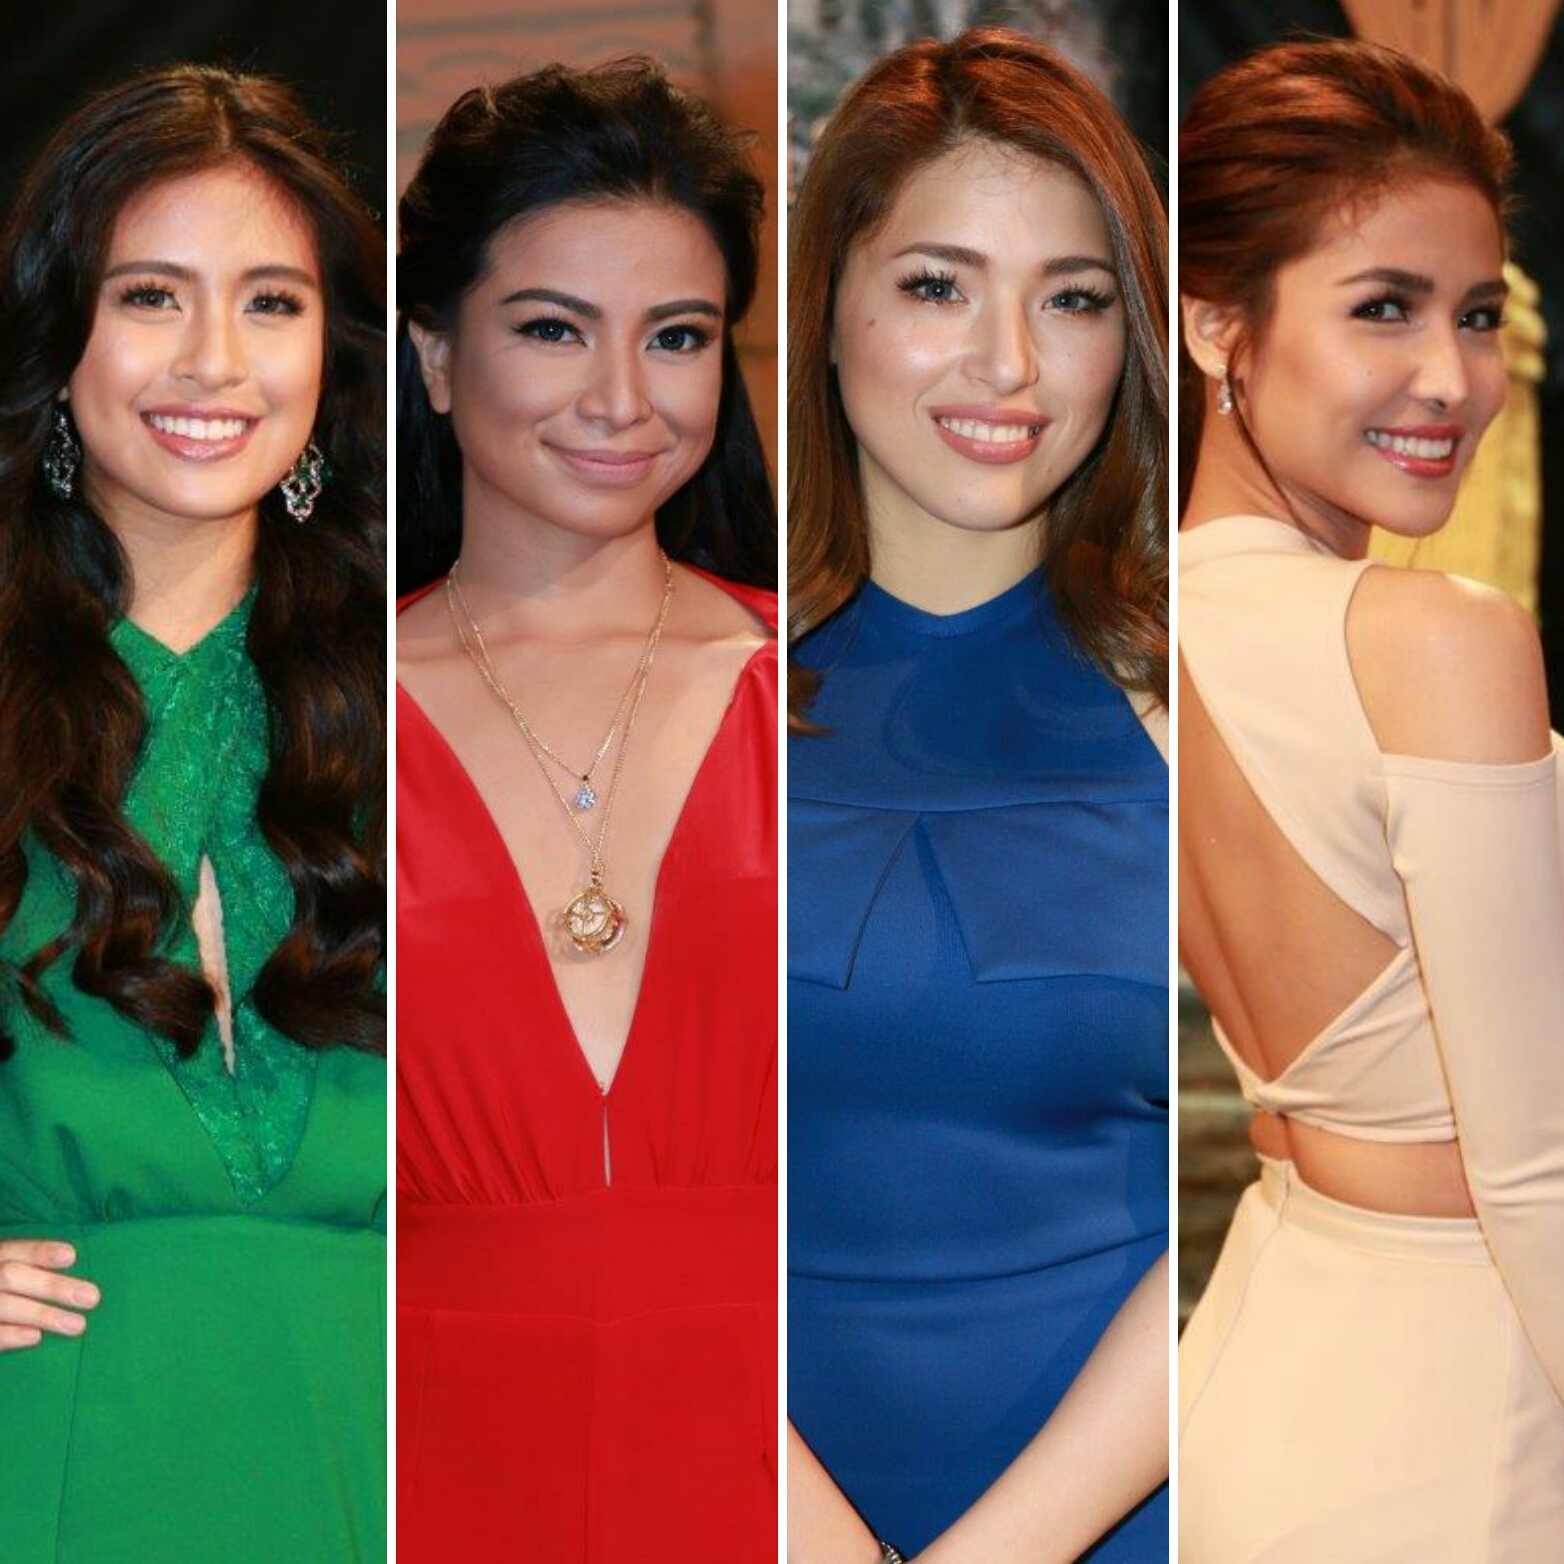 Home-grown Kapuso stars, Kylie Padilla, Gabbi Garcia, Sanya Lopez and Glaiza de Castro were chosen to portray the roles of the four Sang'gres – Amihan, Alena, Danaya and Pirena – or guardians of the elemental gems. (Contributed photo)